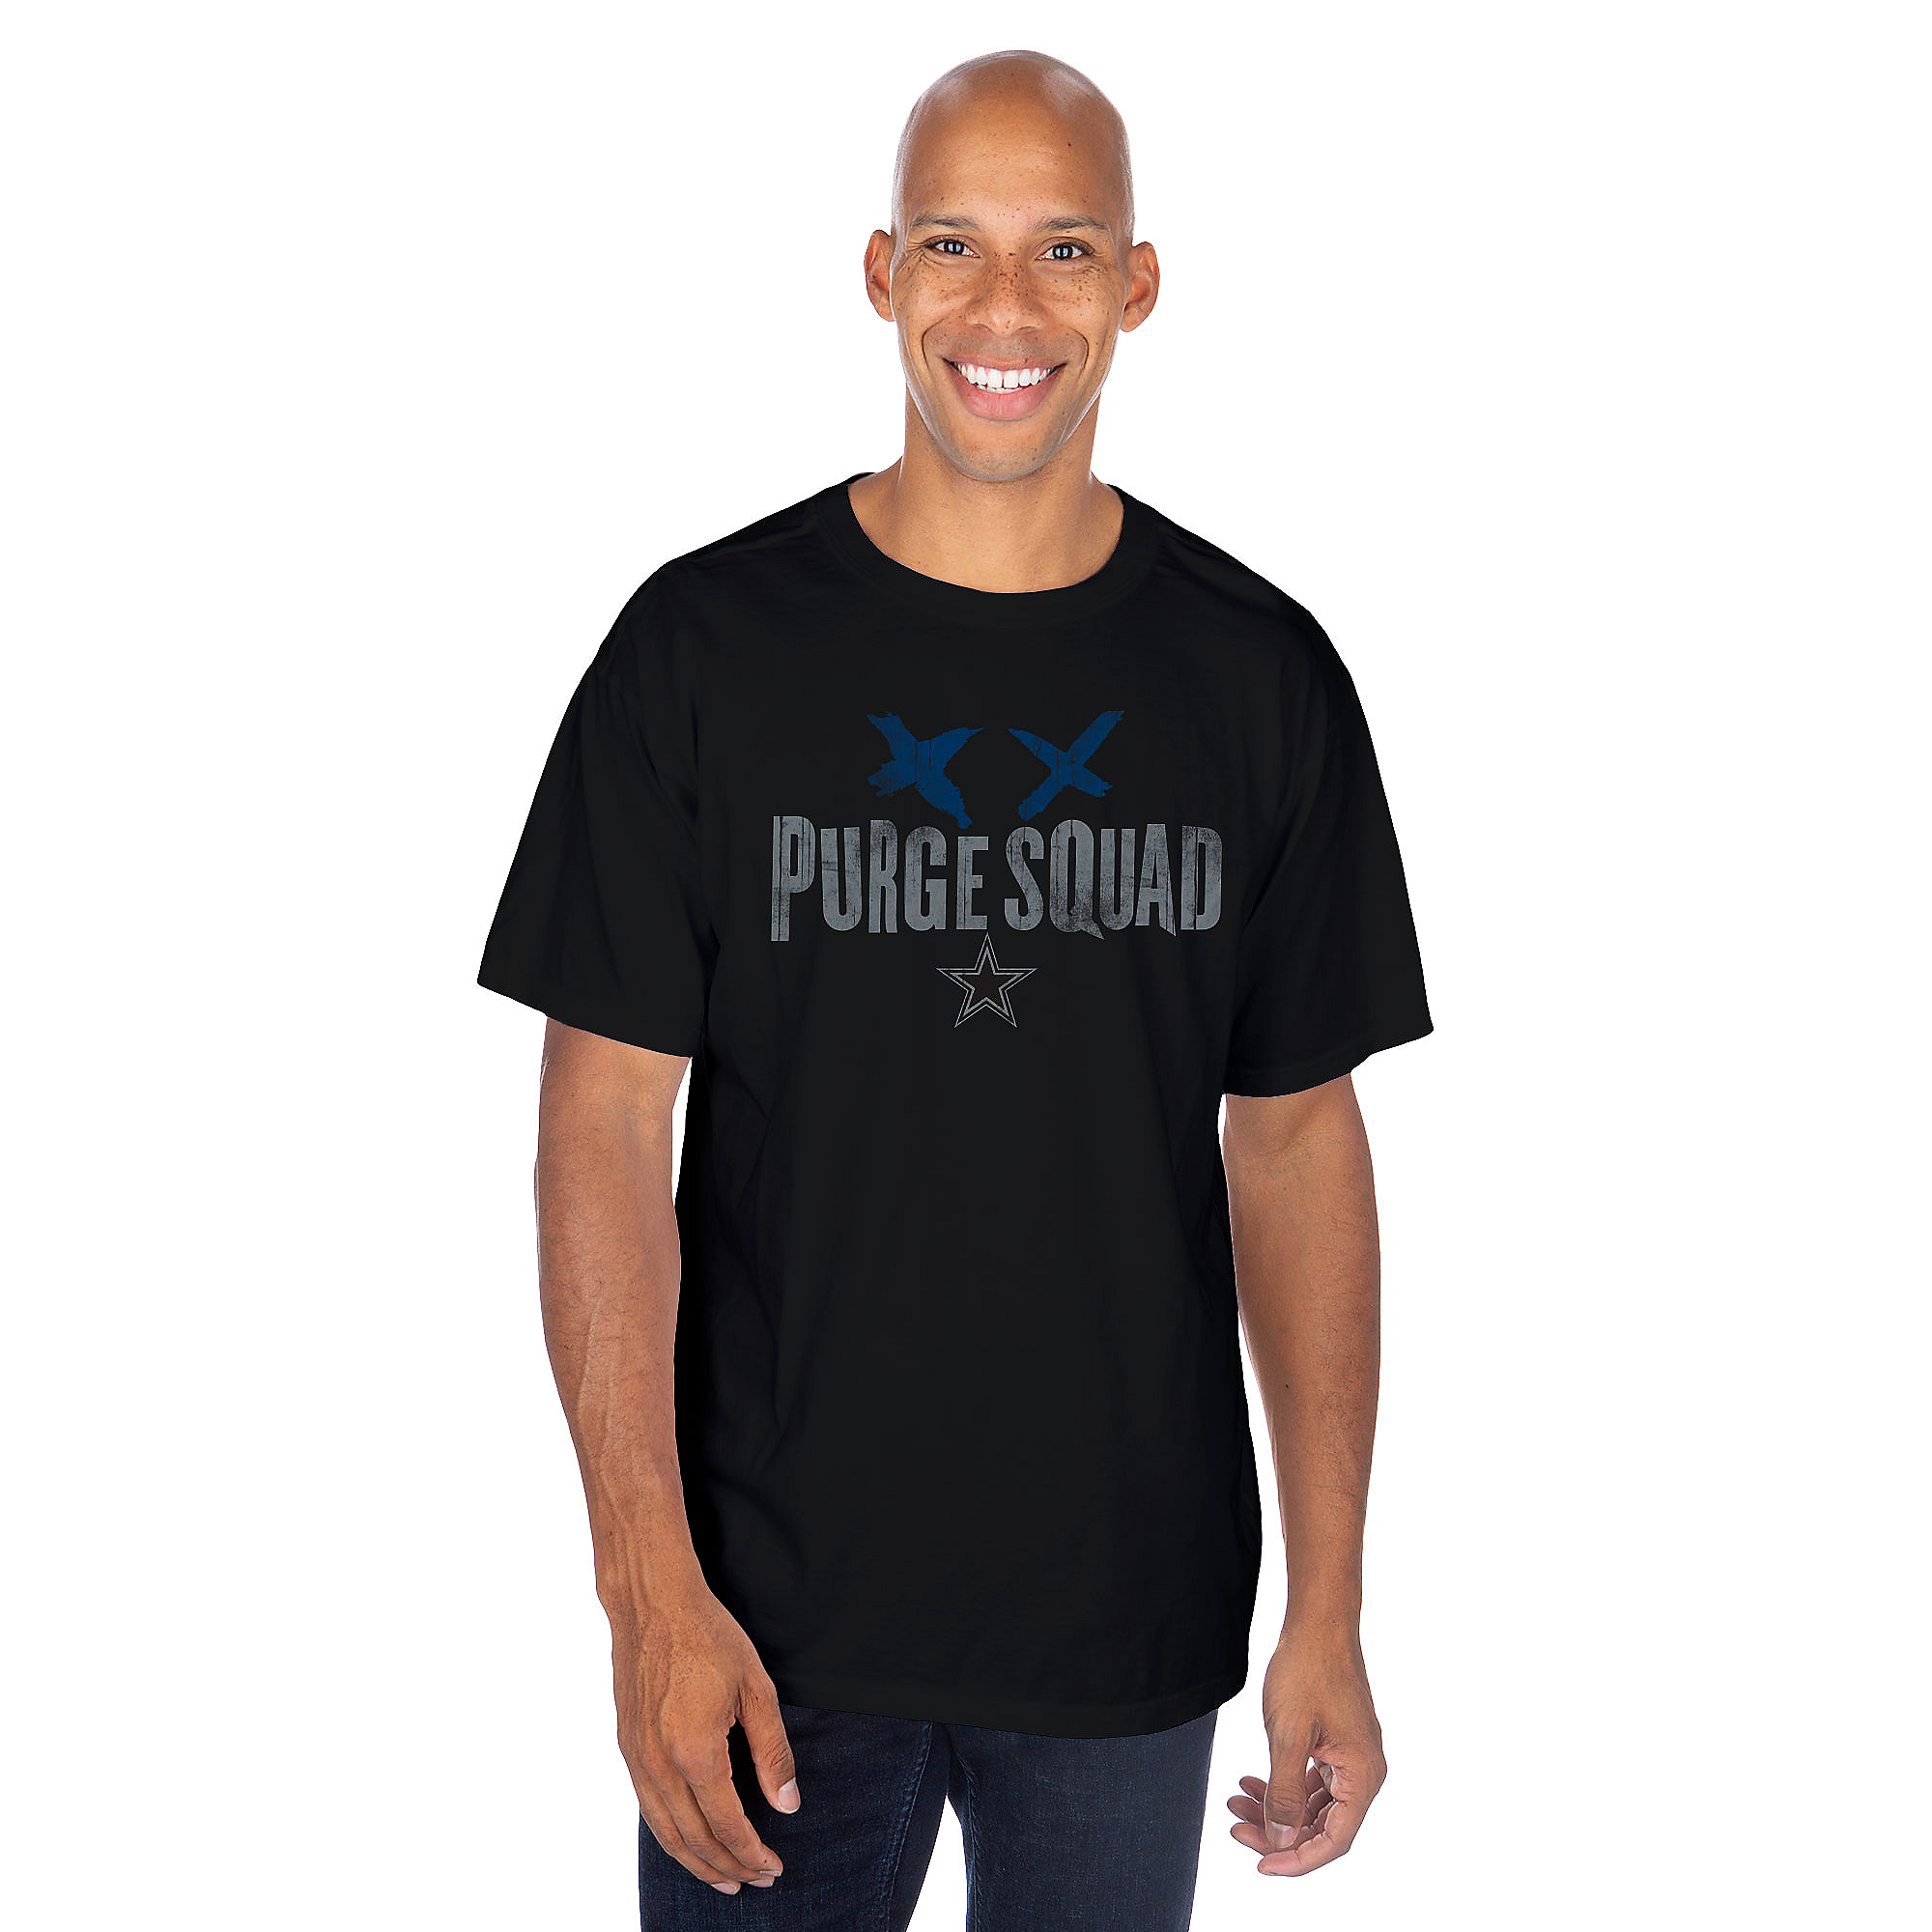 Dallas Cowboys Purge Squad Eyes Short Sleeve T-Shirt